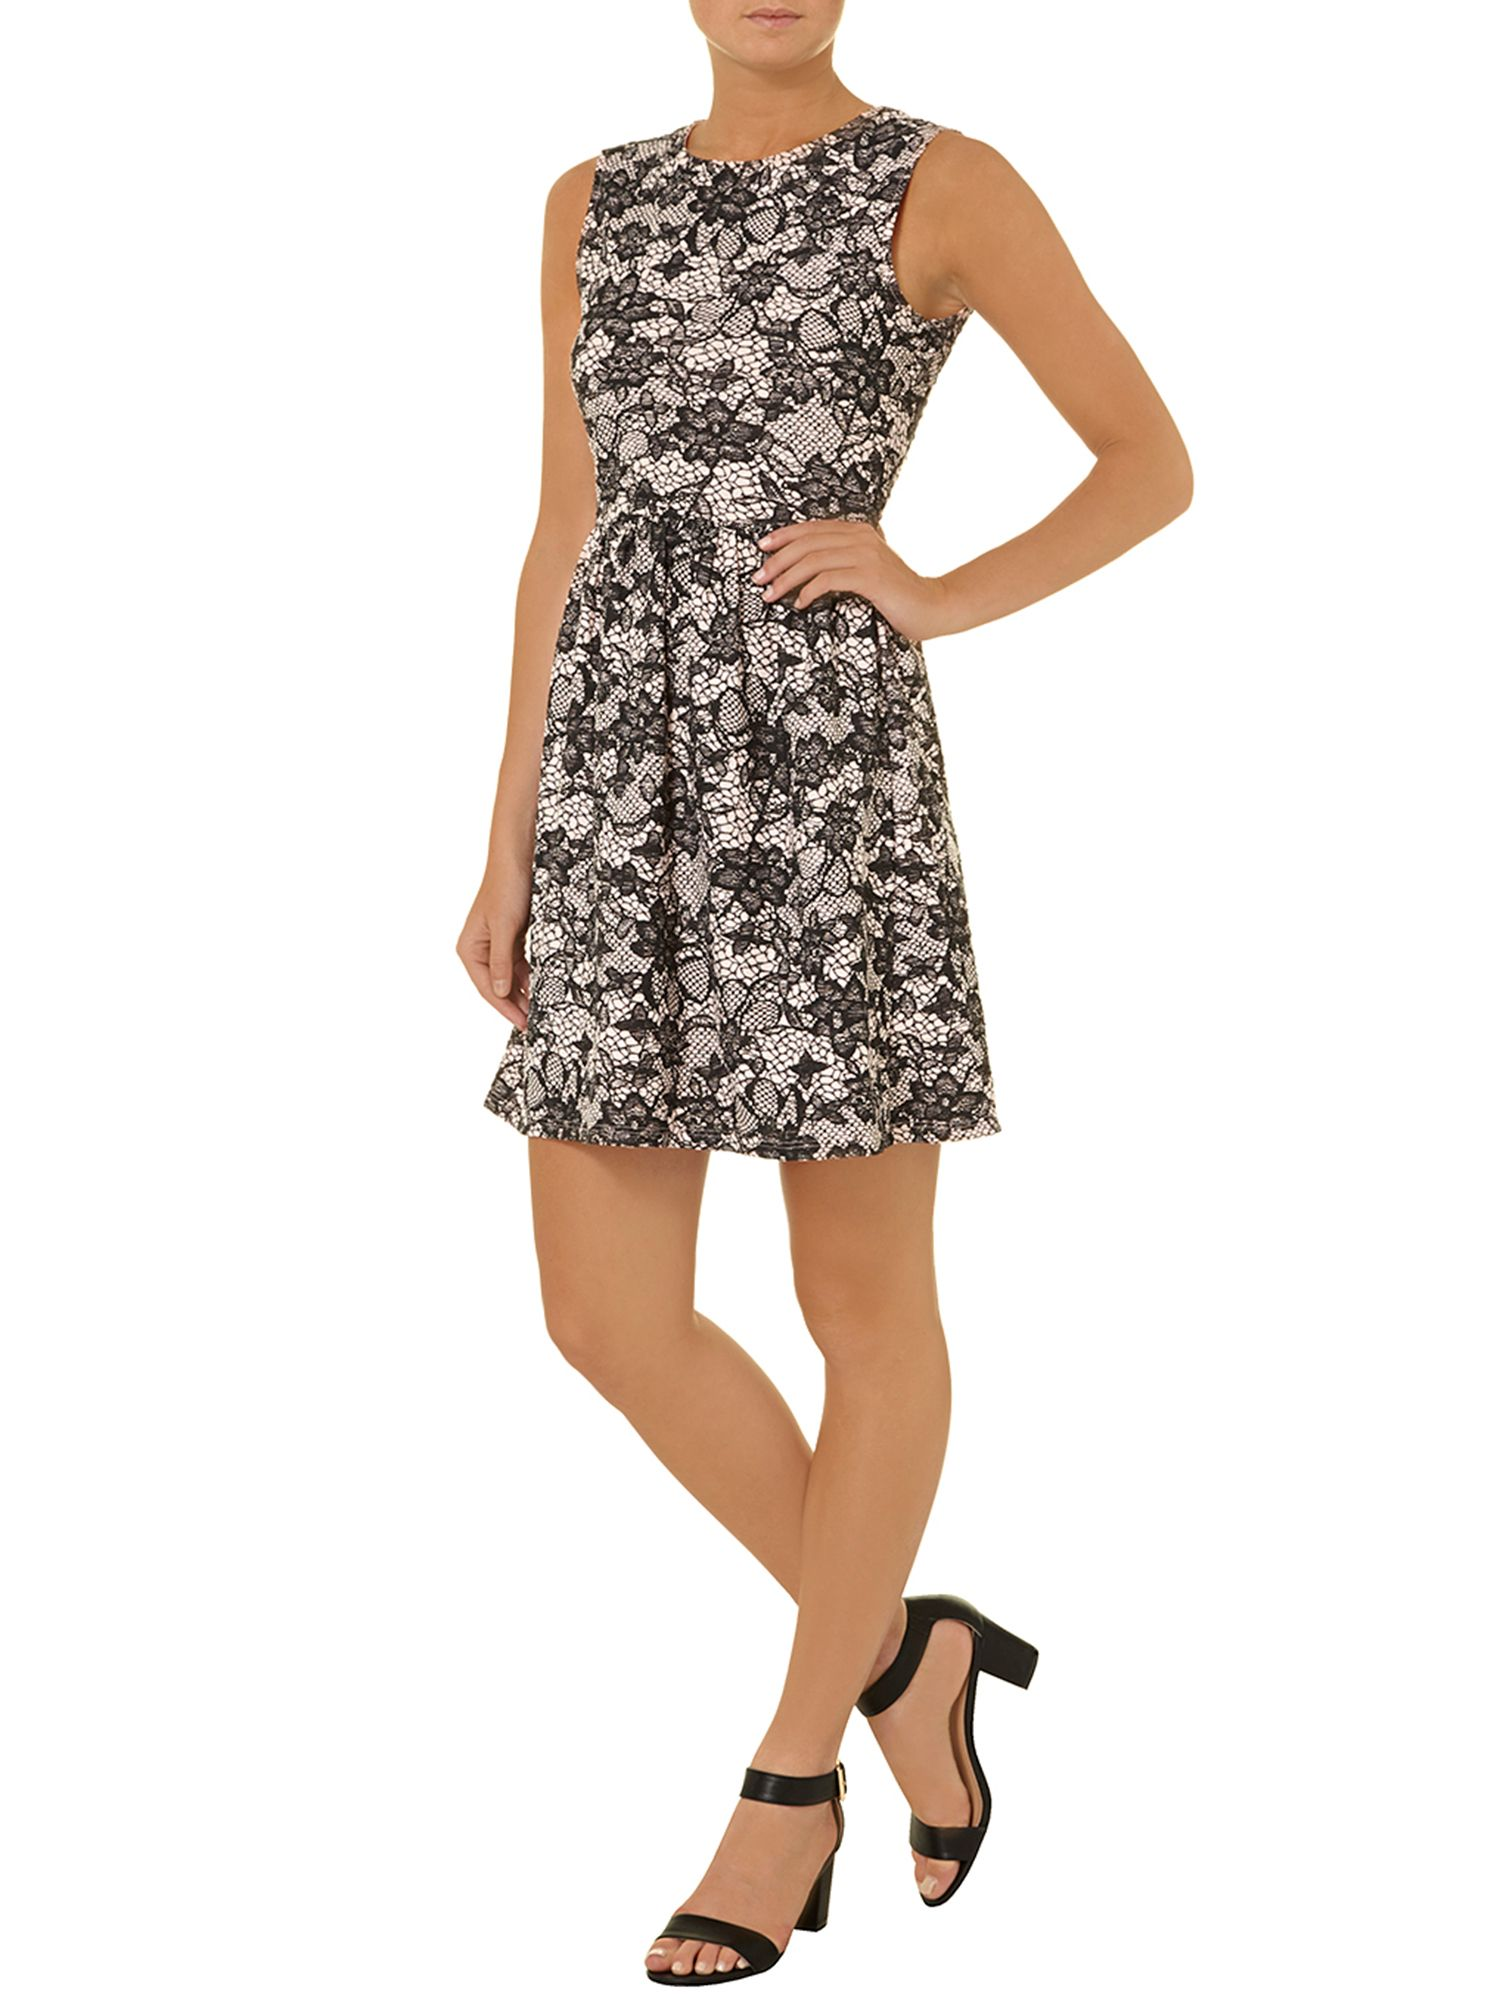 Lace print textured dress